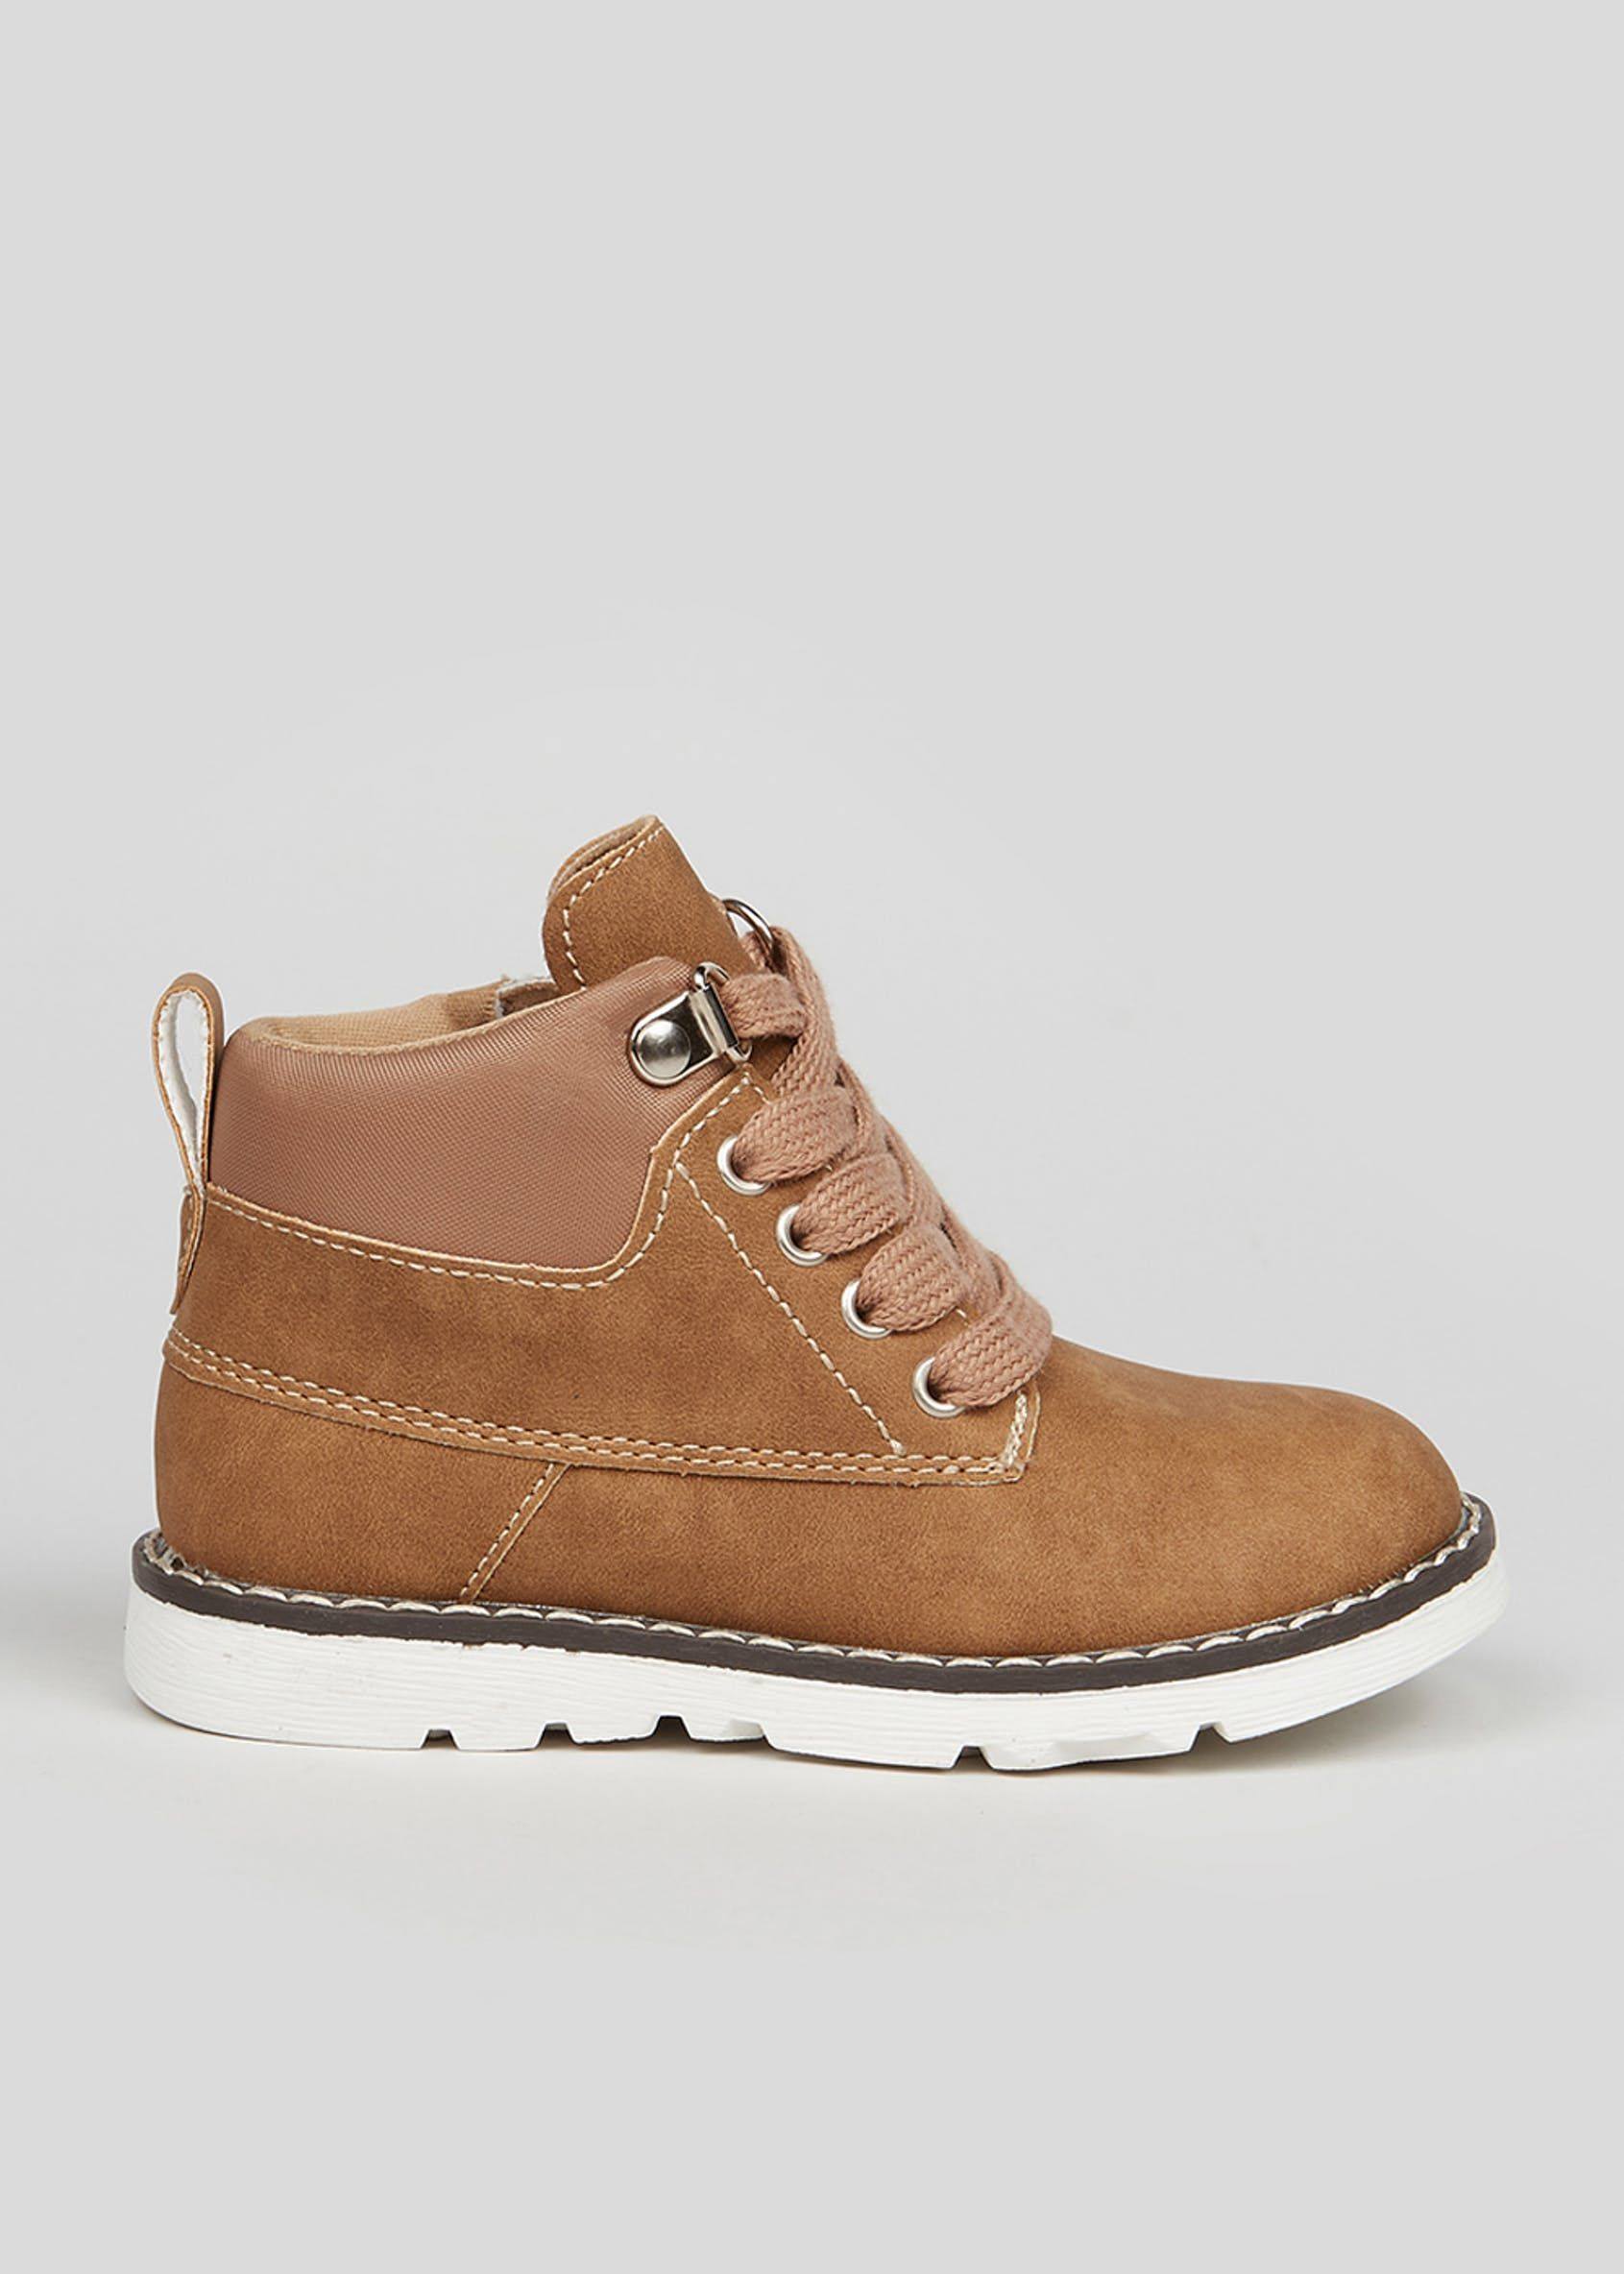 Boys Tan Lace Up Fashion Boots (Younger